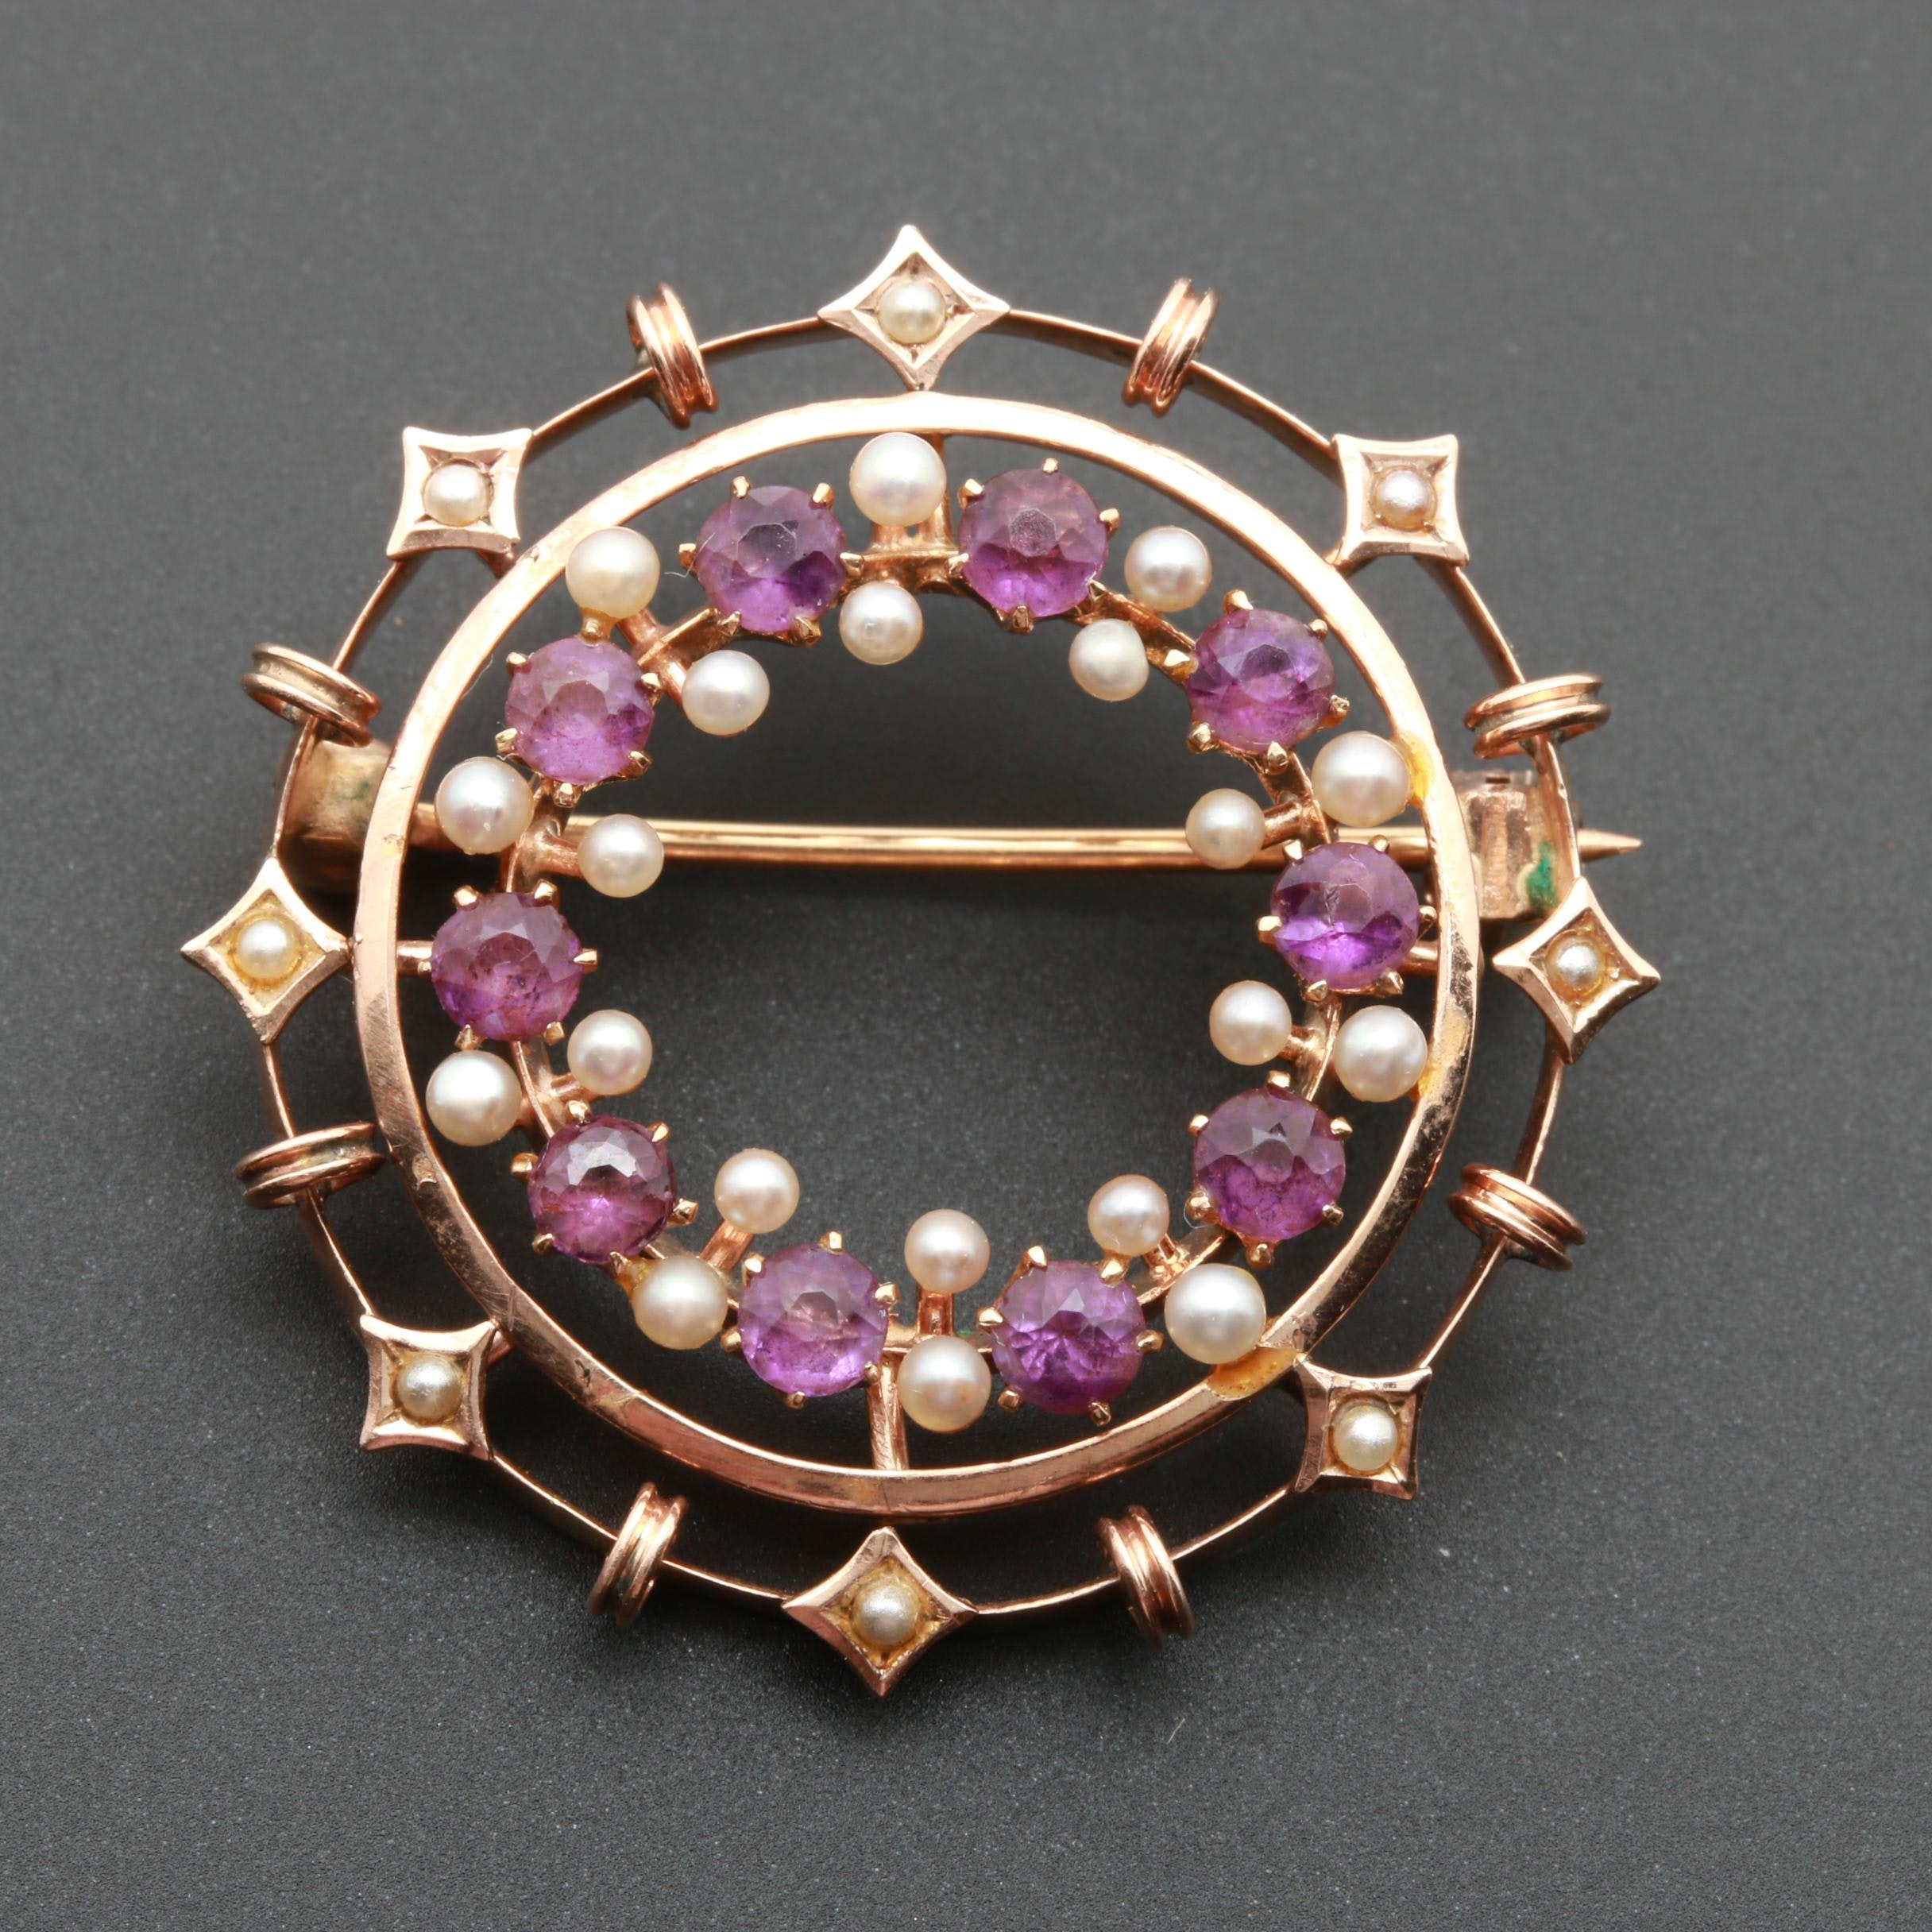 Antique 14K Yellow Gold Amethyst and Cultured Pearl Brooch